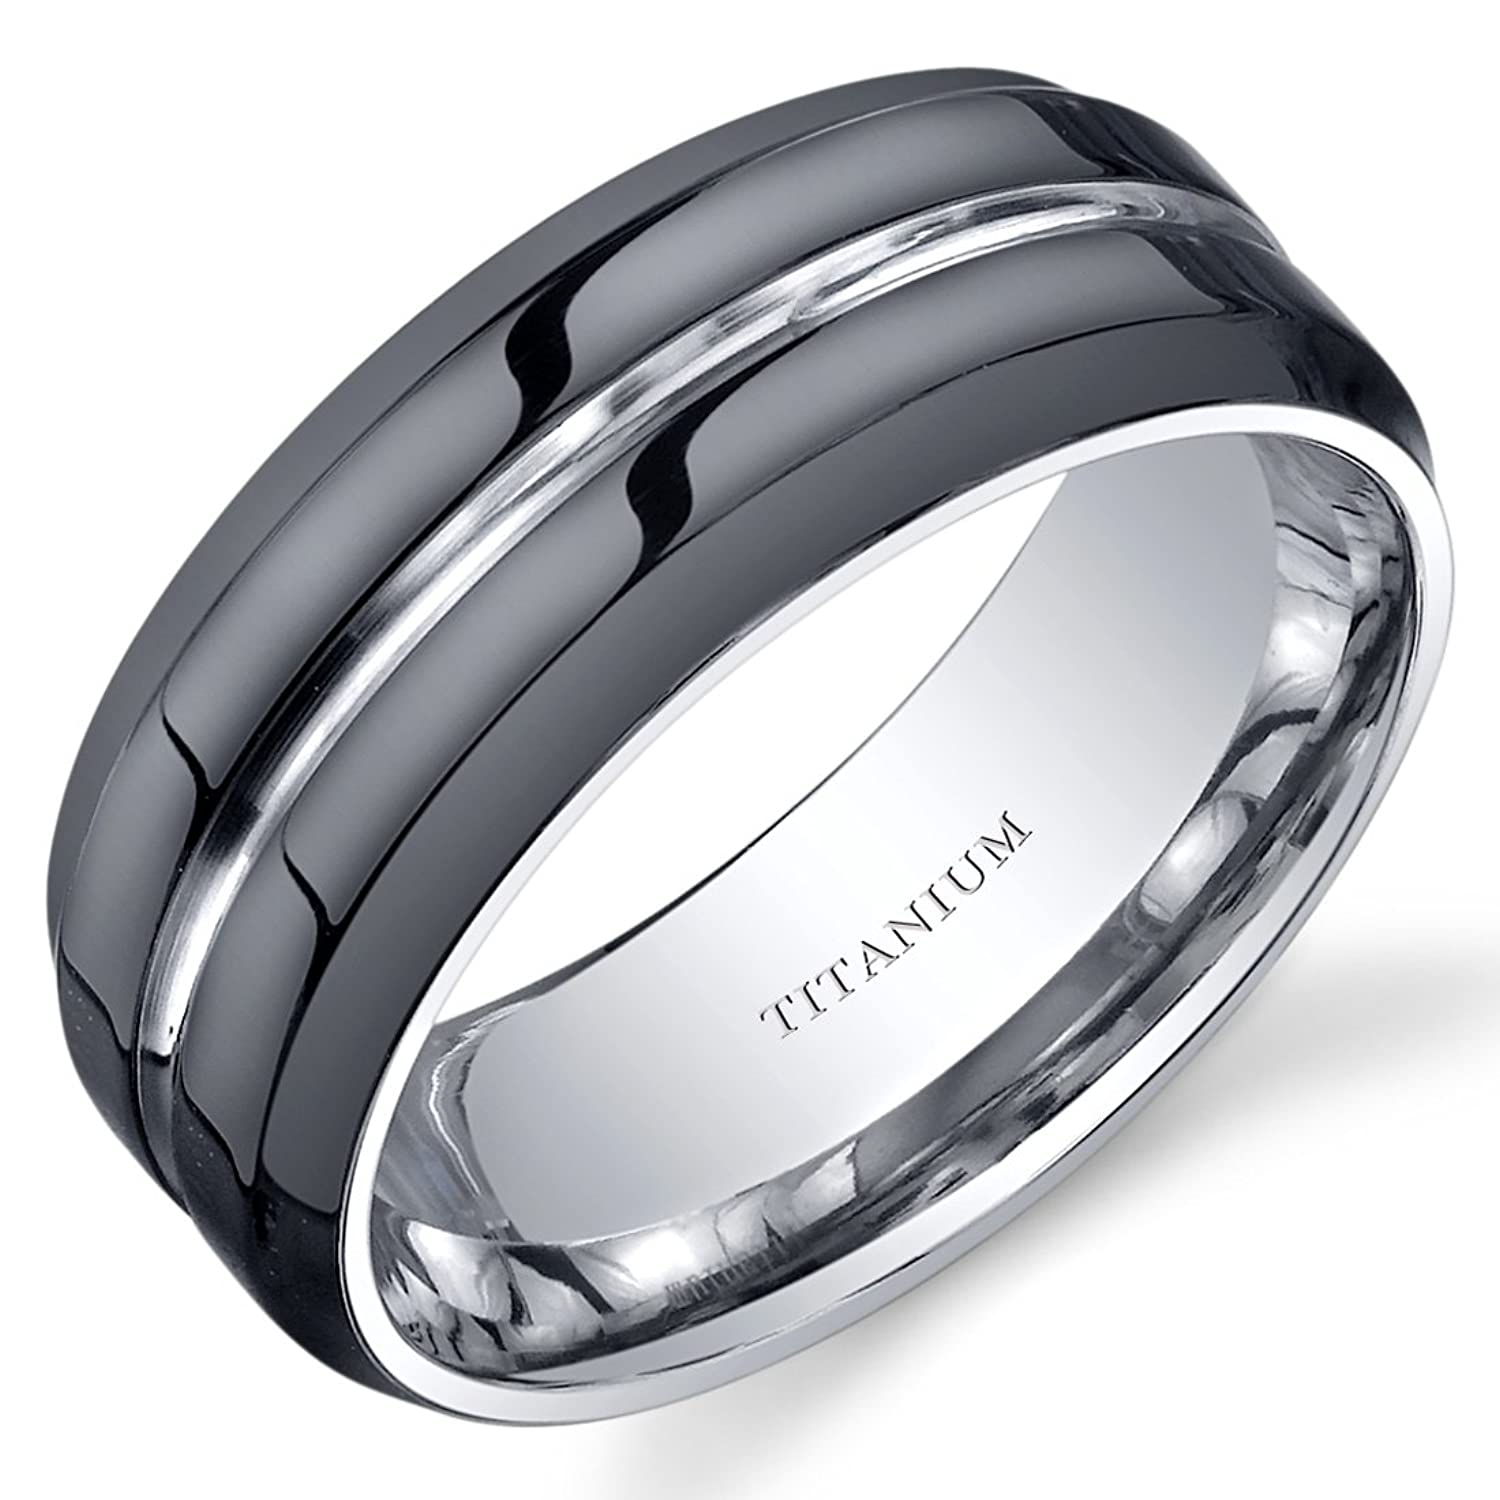 rhodium men s wedding mens bands watch black band youtube finished